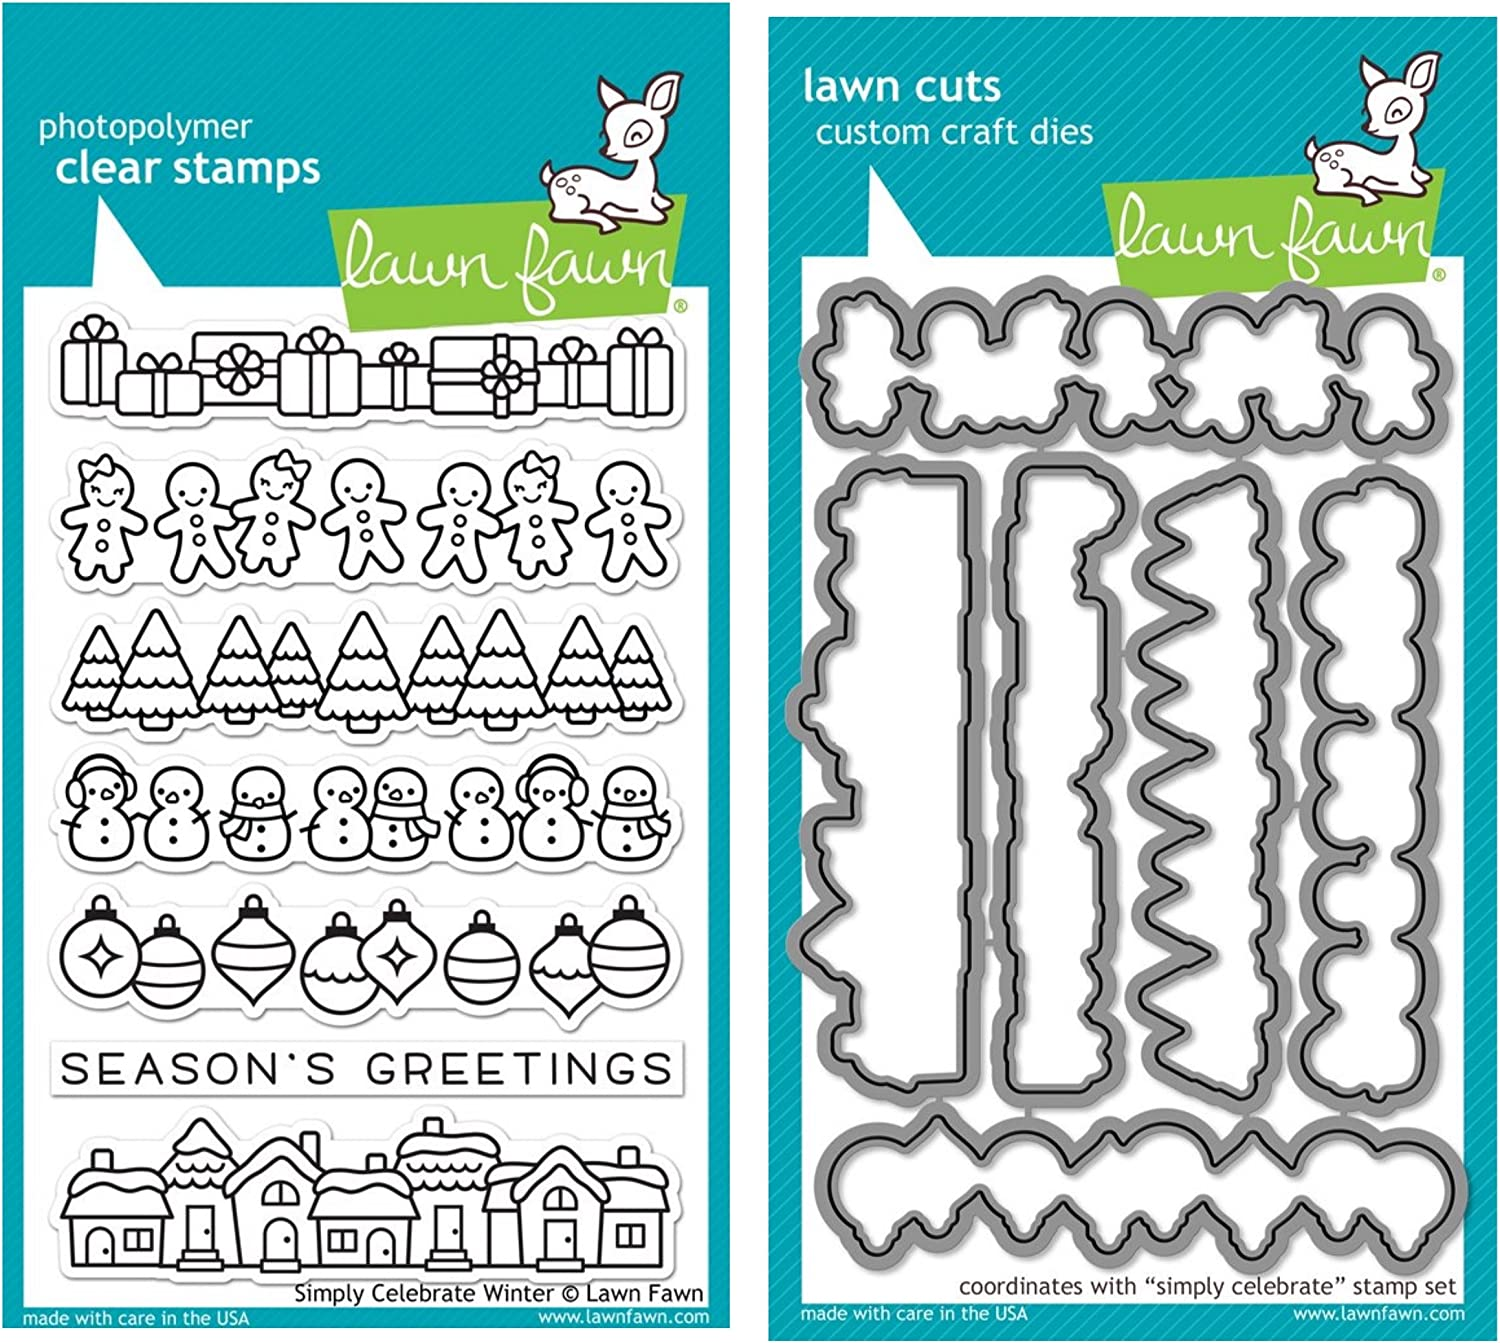 Lawn Fawn Simply Celebrate Winter Clear Stamps and Coordinating Lawn Cut Custom Craft Dies Two Item Bundle LF1769, LF1770